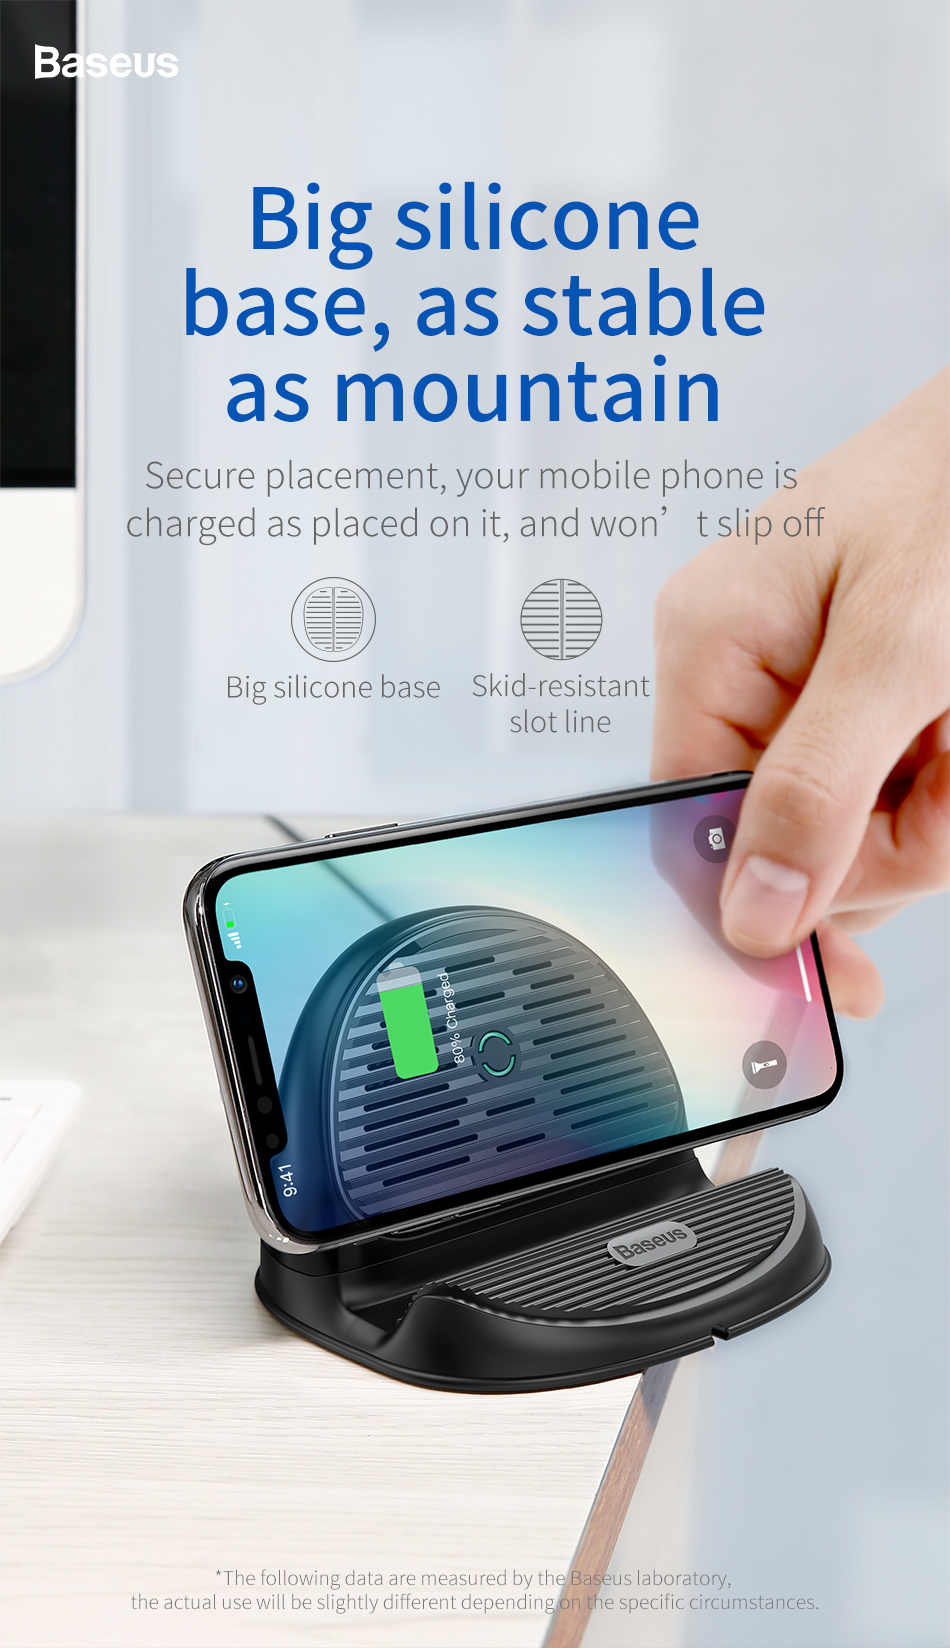 Baseus Desktop QI Wireless Charger 10W Radiating Fan Wireless Fast charging charger for iPhone X 8 Samsung S9 OnePlus 6 Xiaomi 1